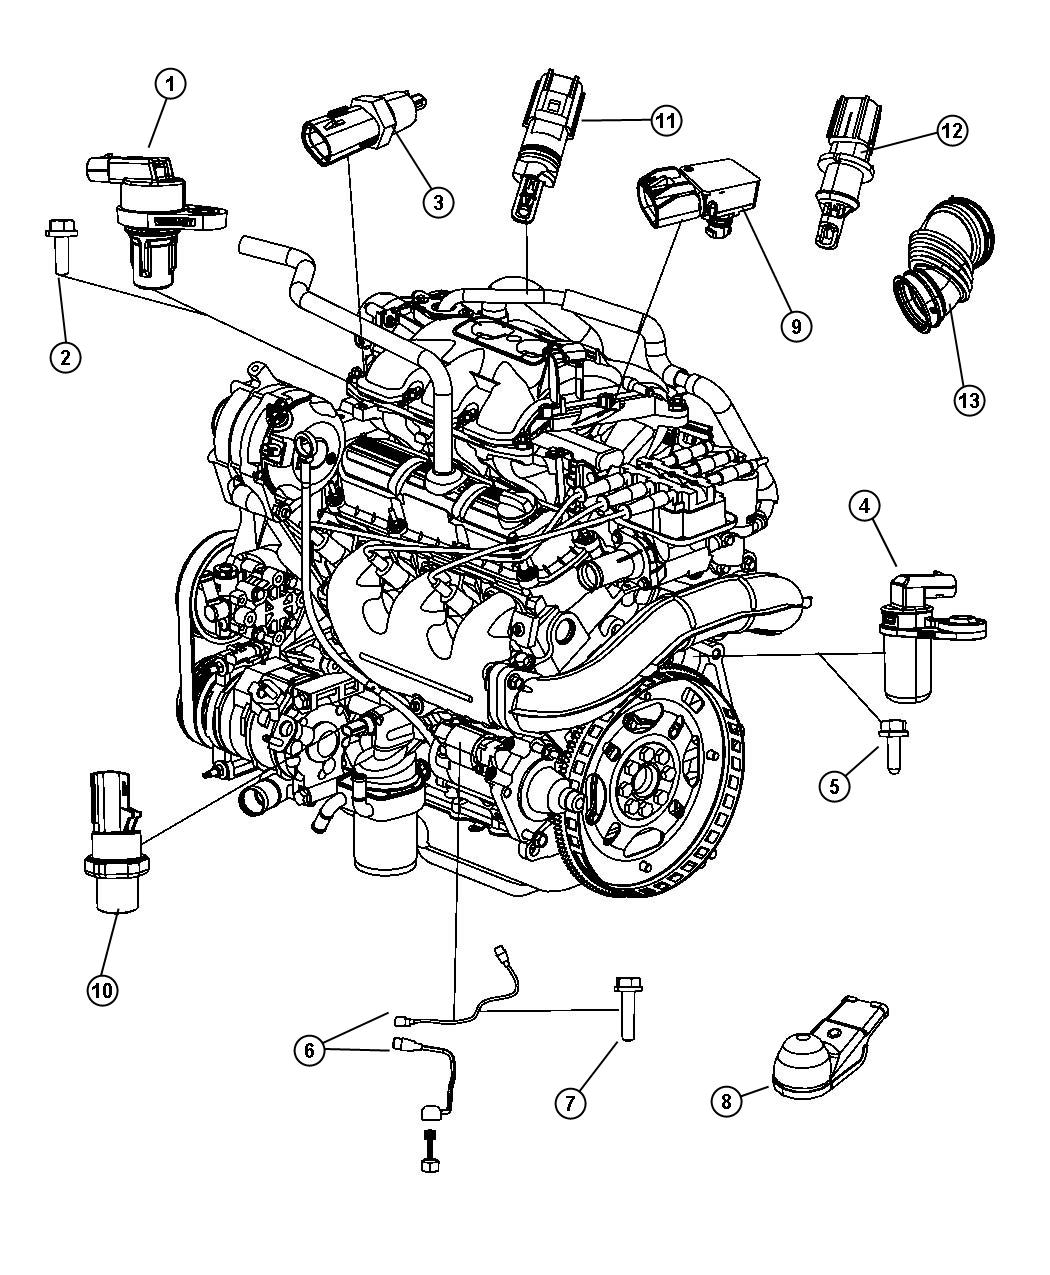 2011 Dodge Avenger Engine Diagram Another Blog About Wiring 2005 Komfort 2010 Grand Caravan 4 0